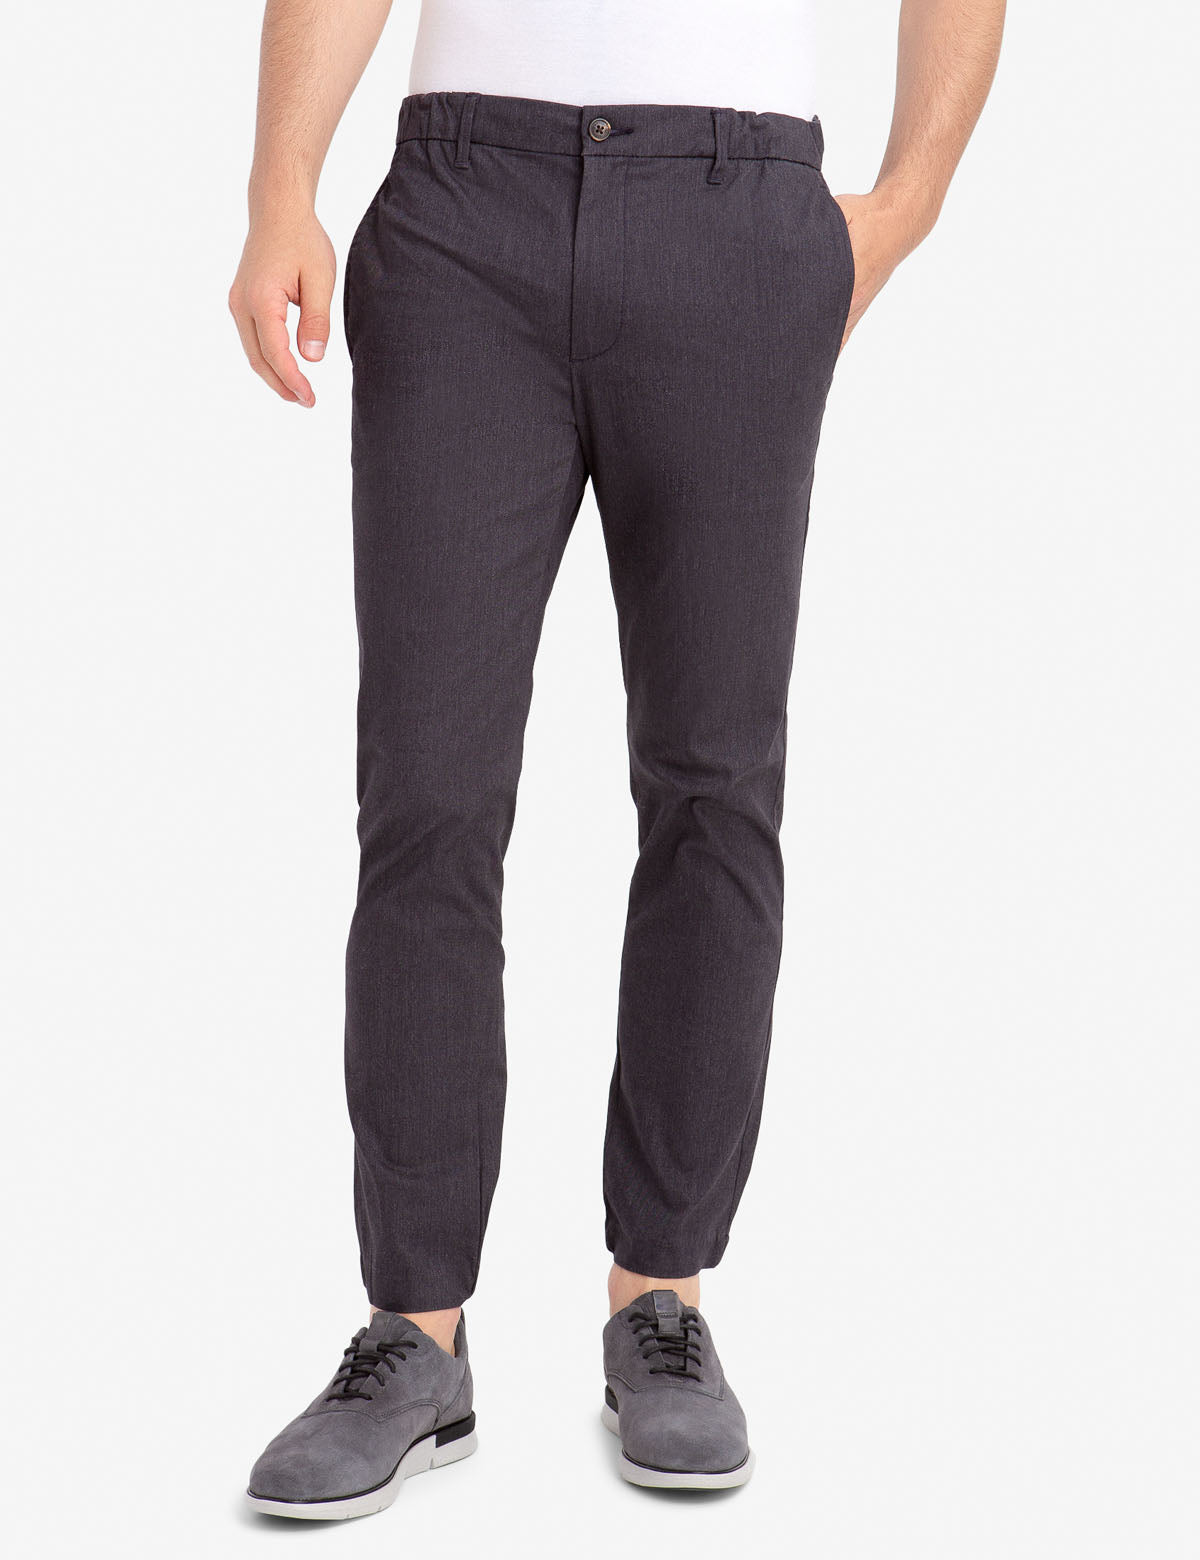 STRETCH TWILL JOGGERS - U.S. Polo Assn.